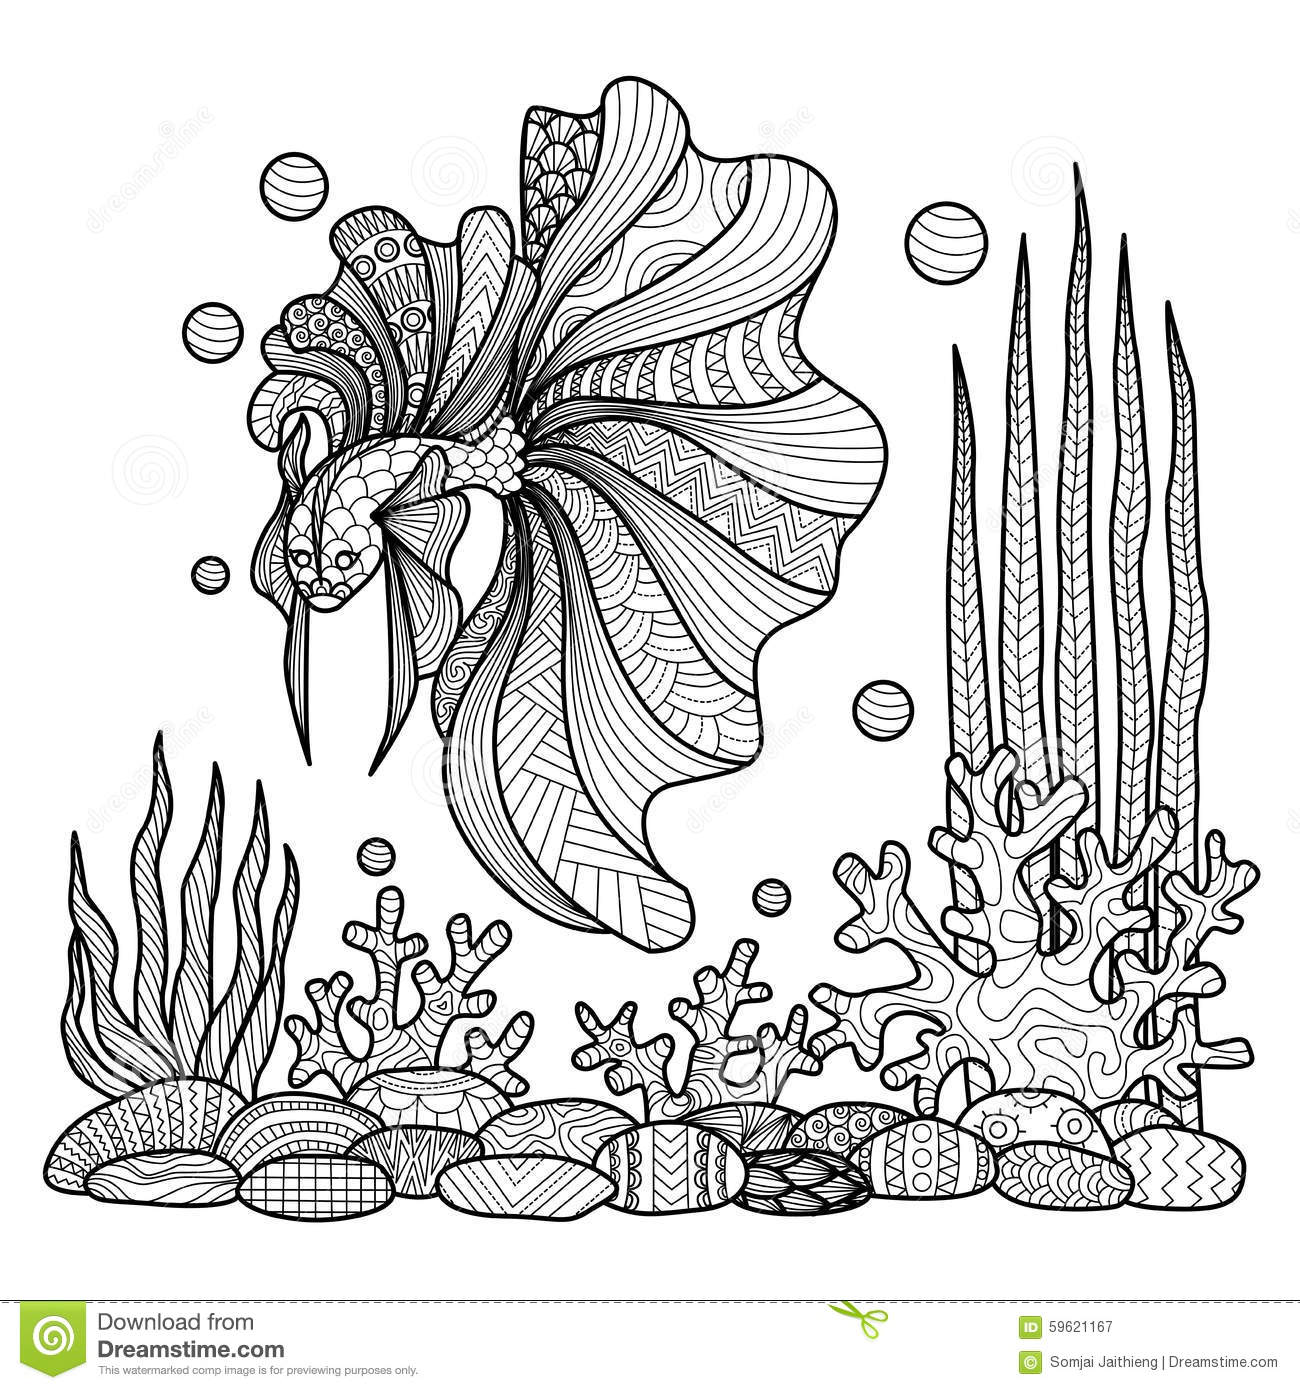 Fighting Fish Drawing For Coloring Book. Stock Vector